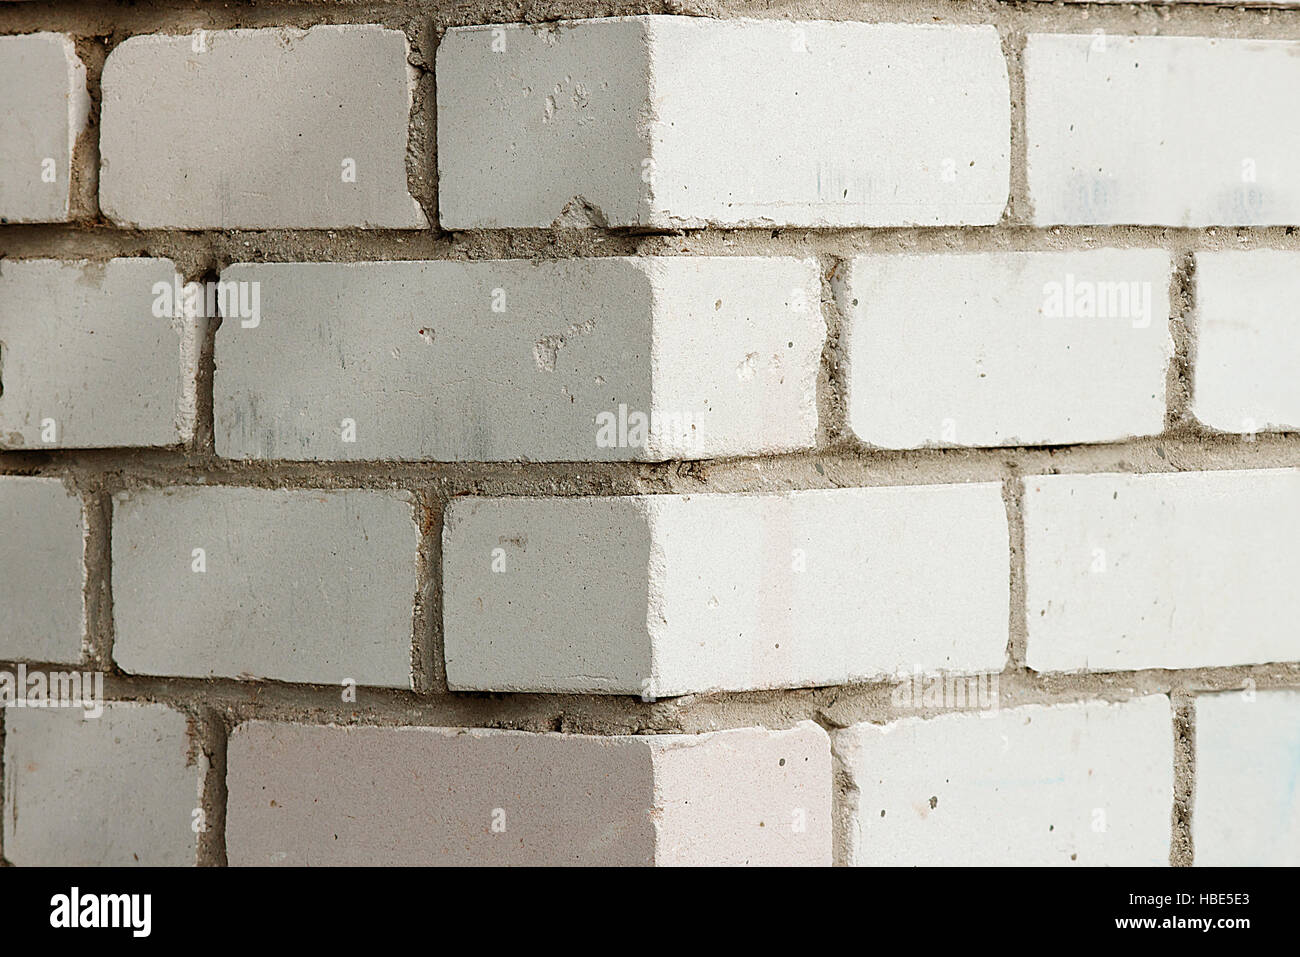 The angle of the brick buildings - Stock Image